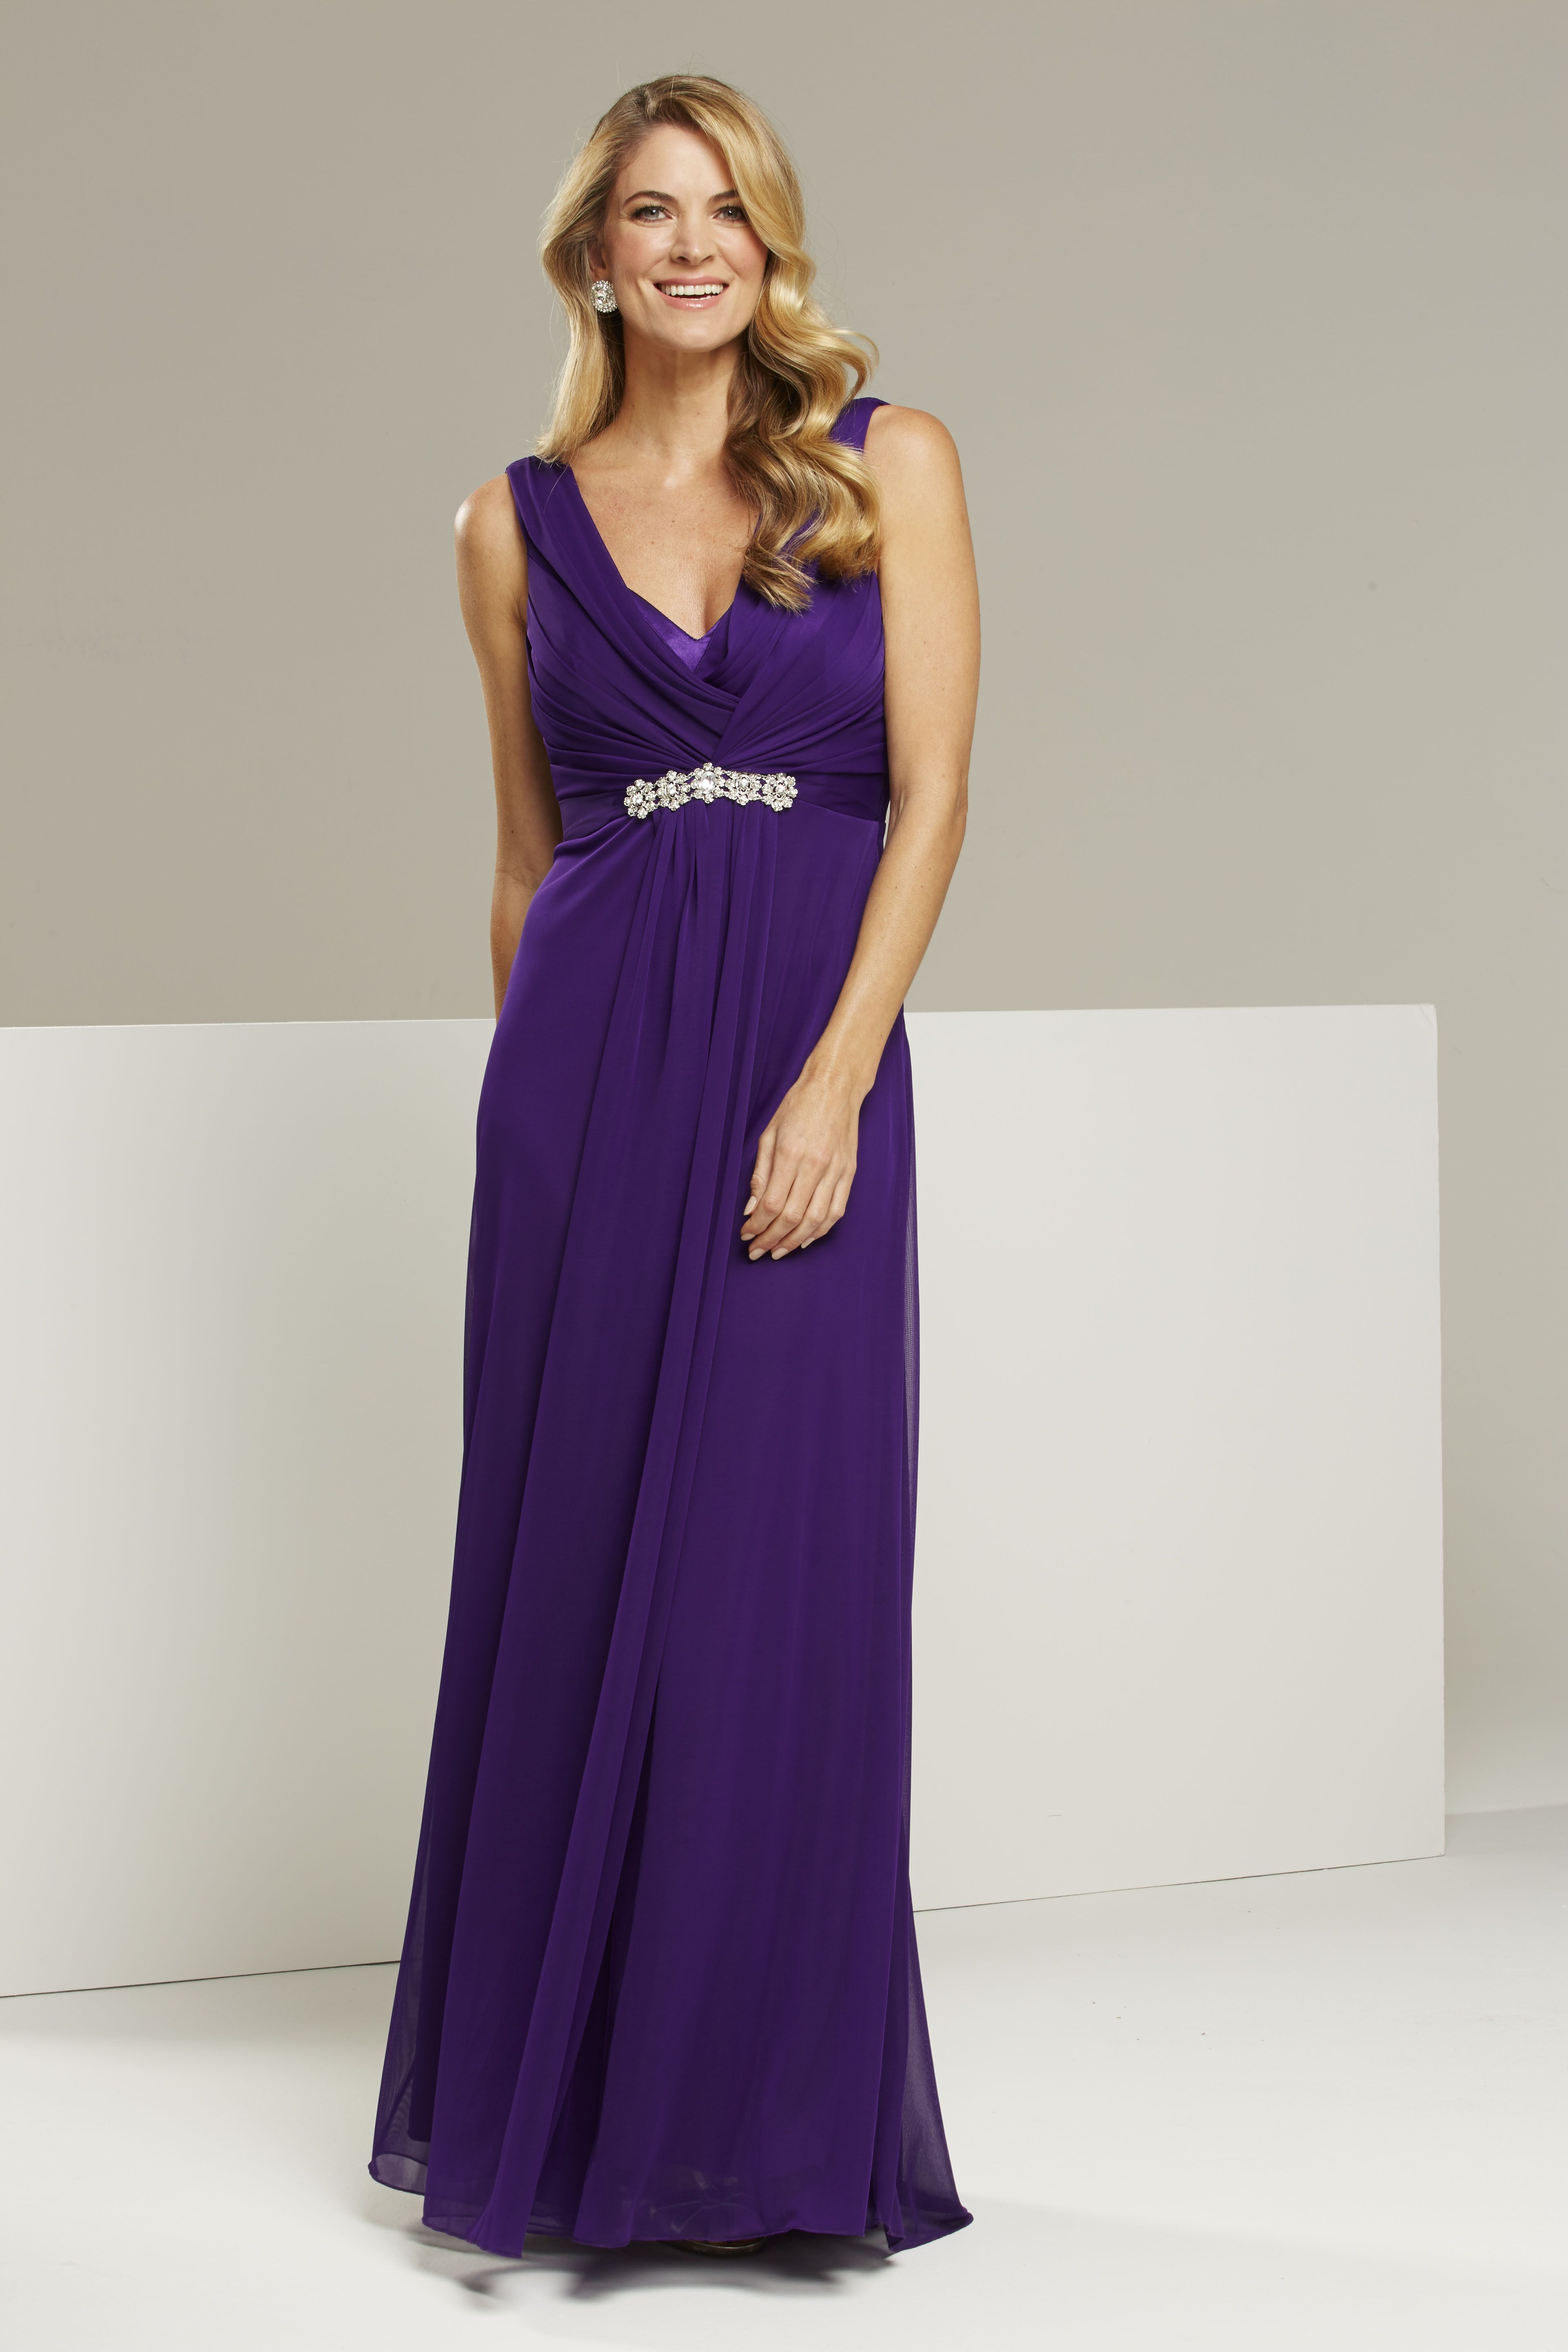 Mr K Bridesmaid dress. Style: KB5152 | Mr K Ongoing Bridesmaids 2014 ...